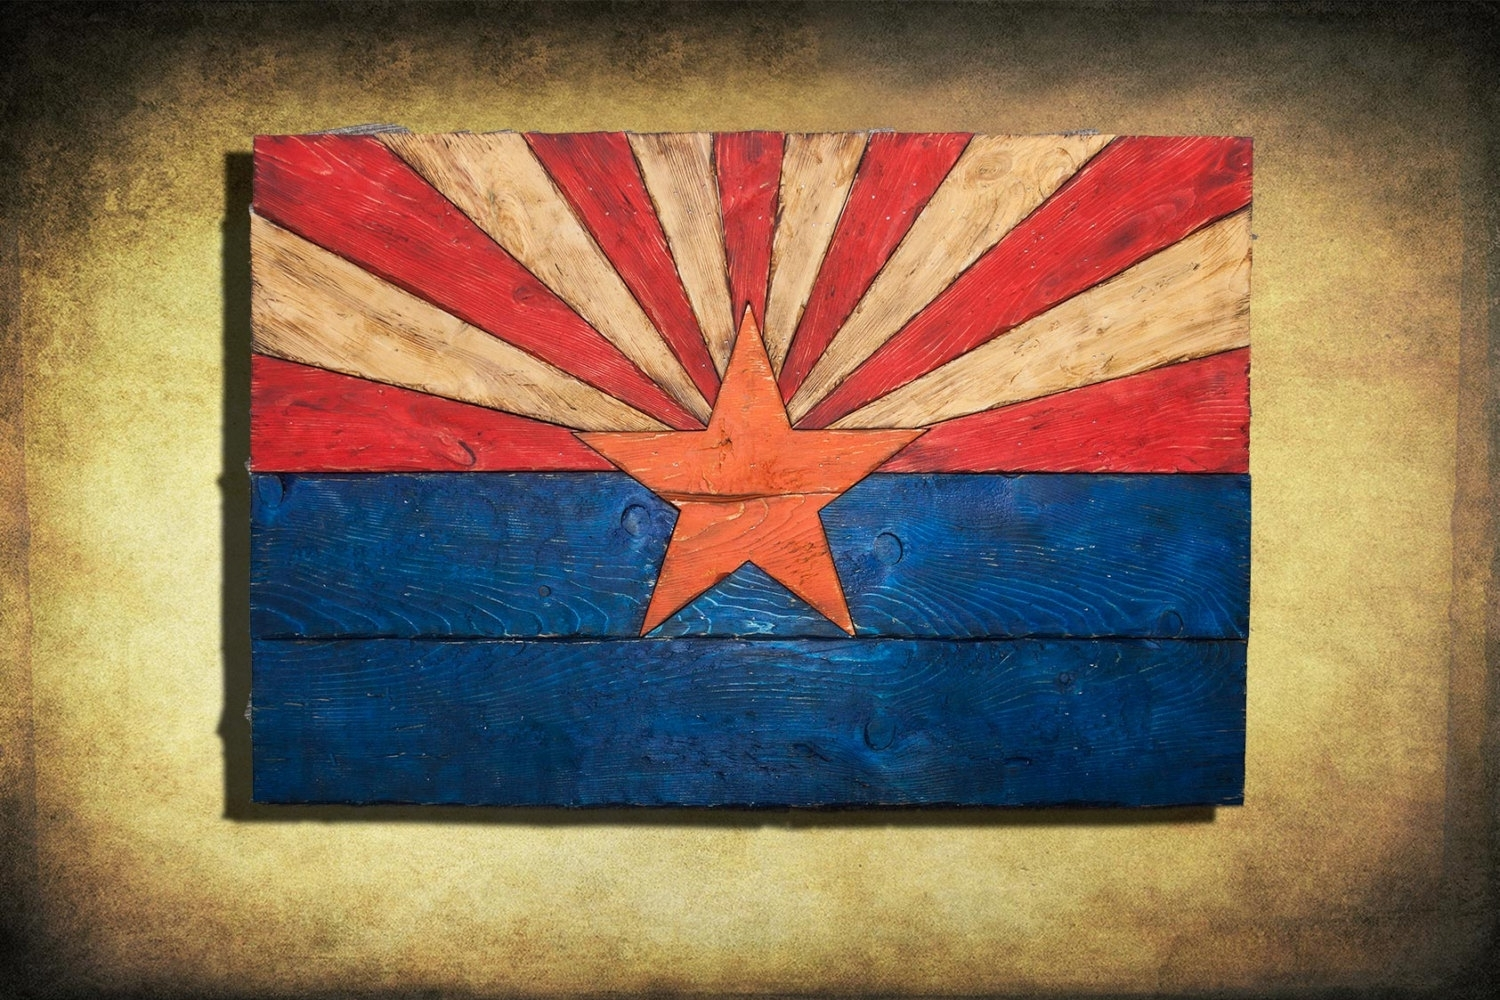 Arizona Flag, Handmade, Distressed Painted Wood, Vintage, Art Intended For Arizona Wall Art (View 12 of 20)